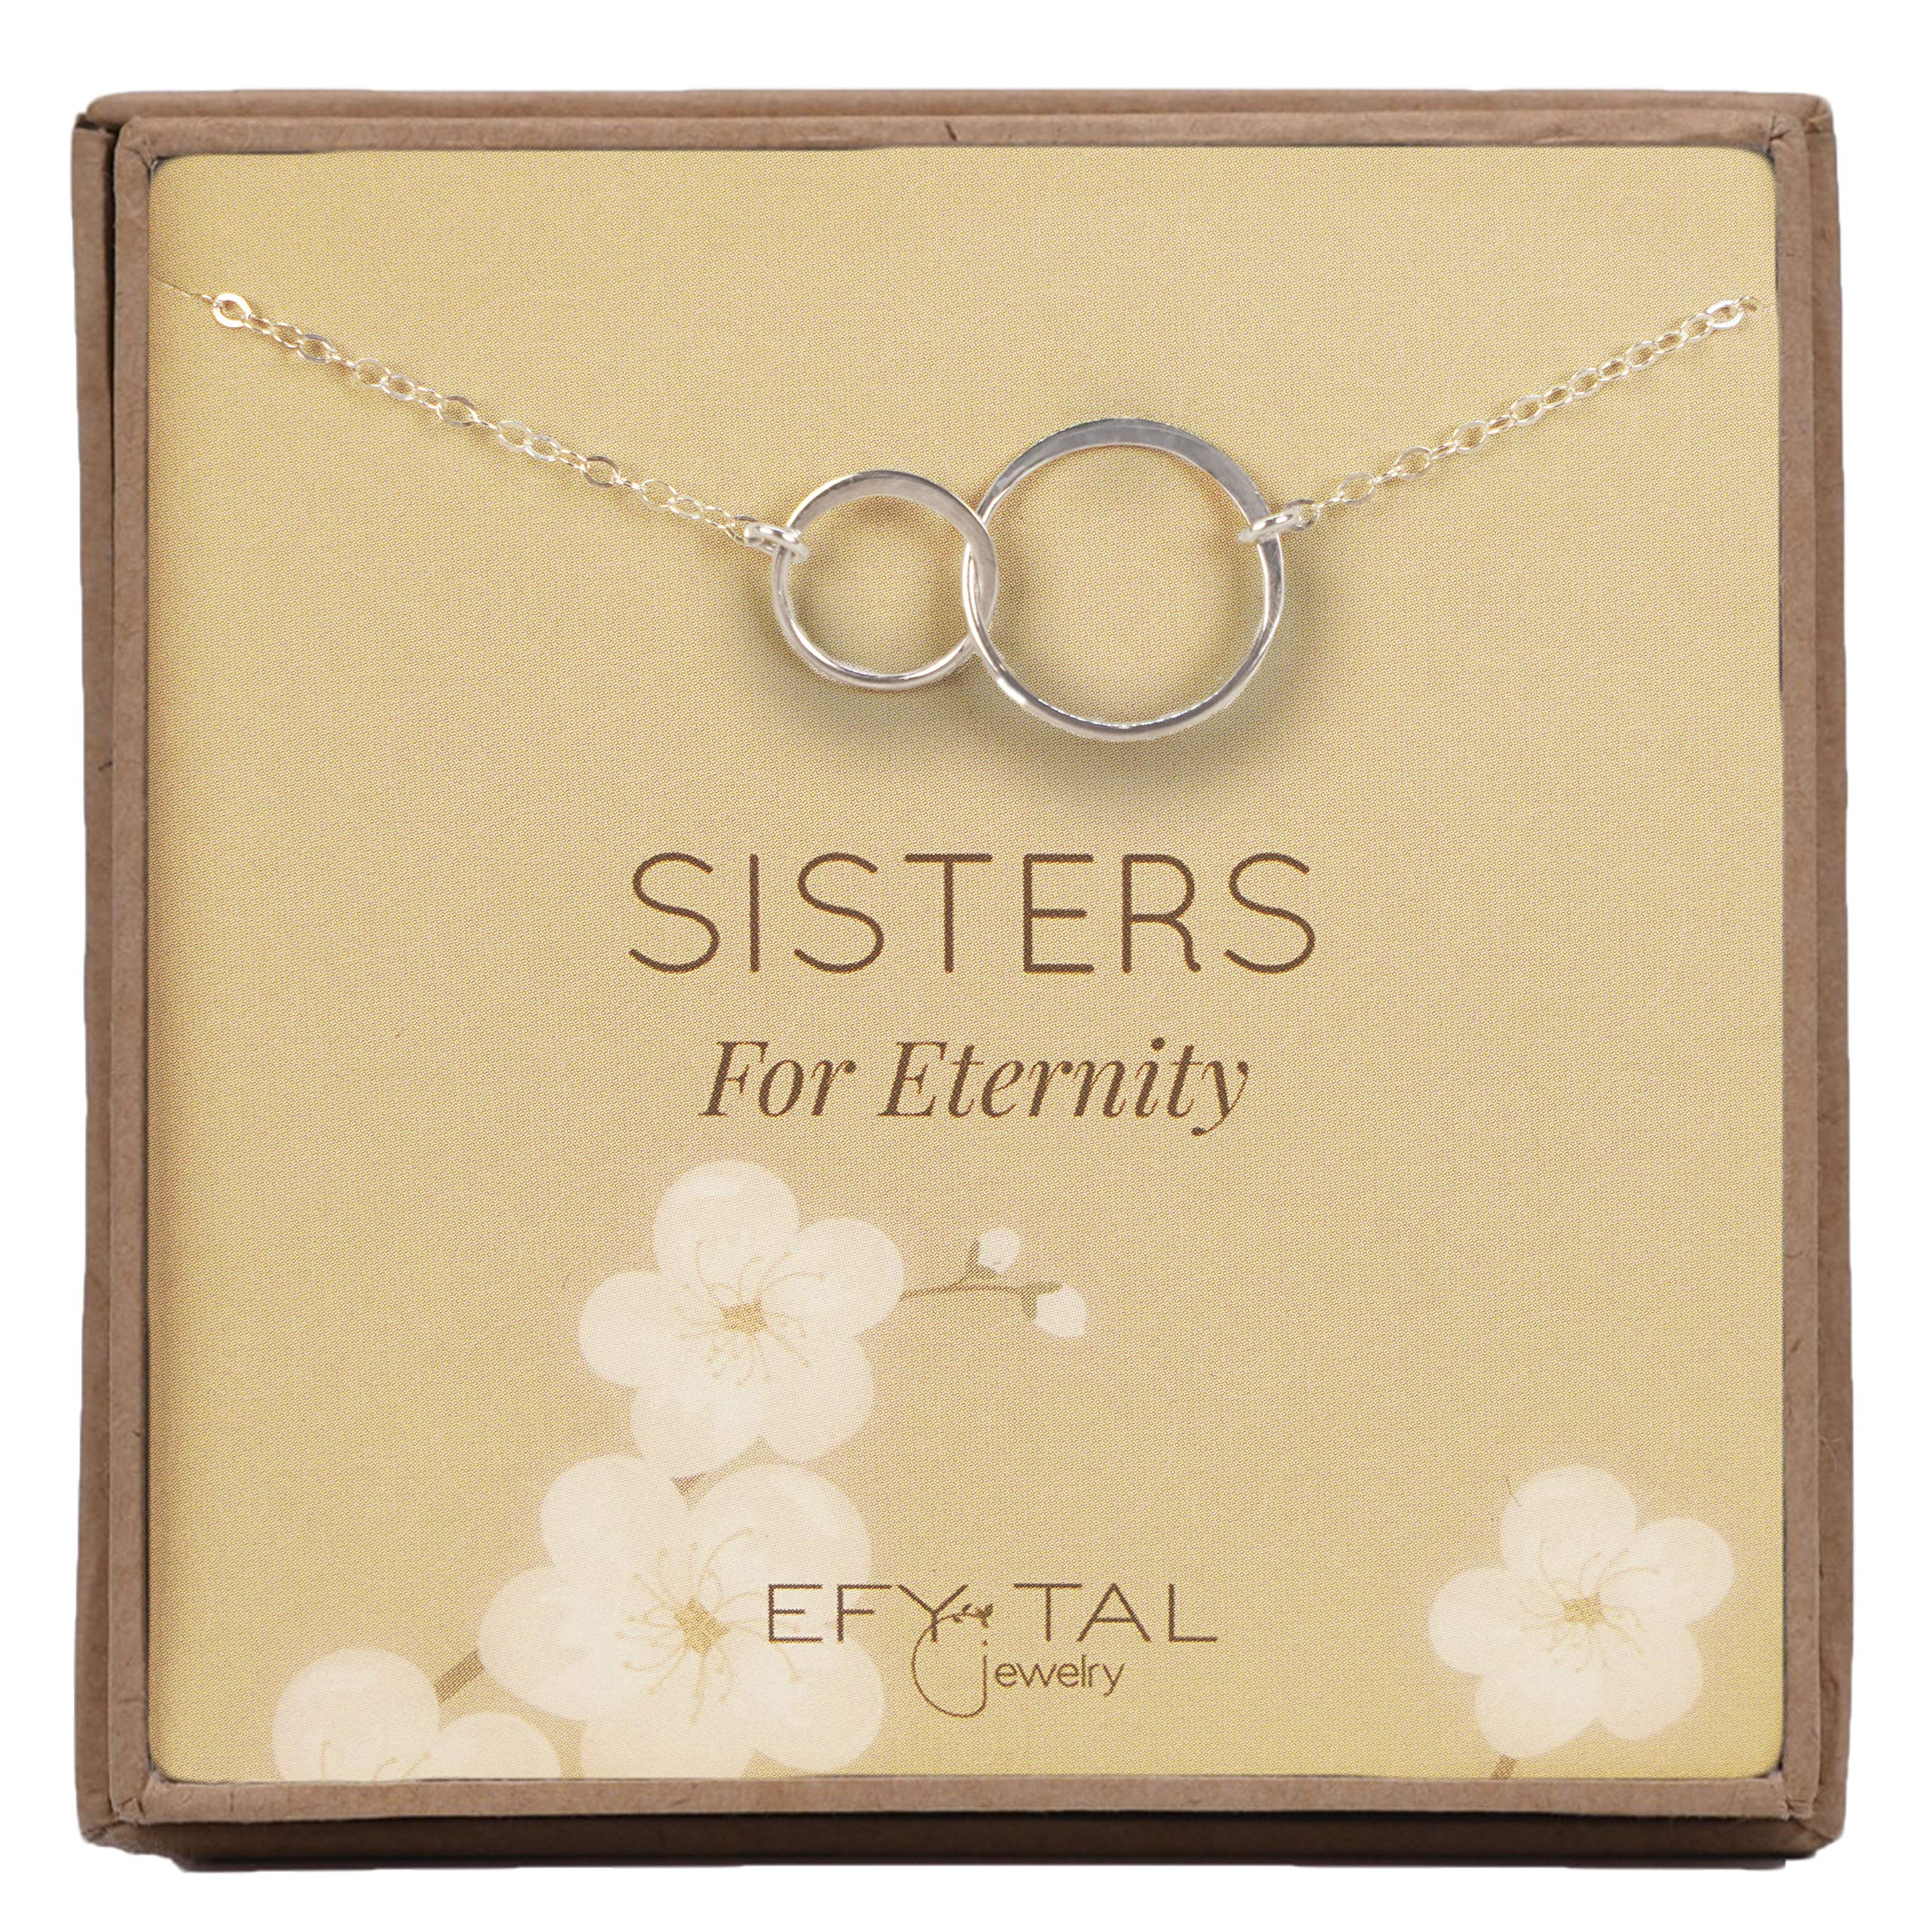 Efy Tal Jewelry Sterling Silver Sisters Necklace, Infinity Joined Two Interlocking Double Circles on Card Gift Sister